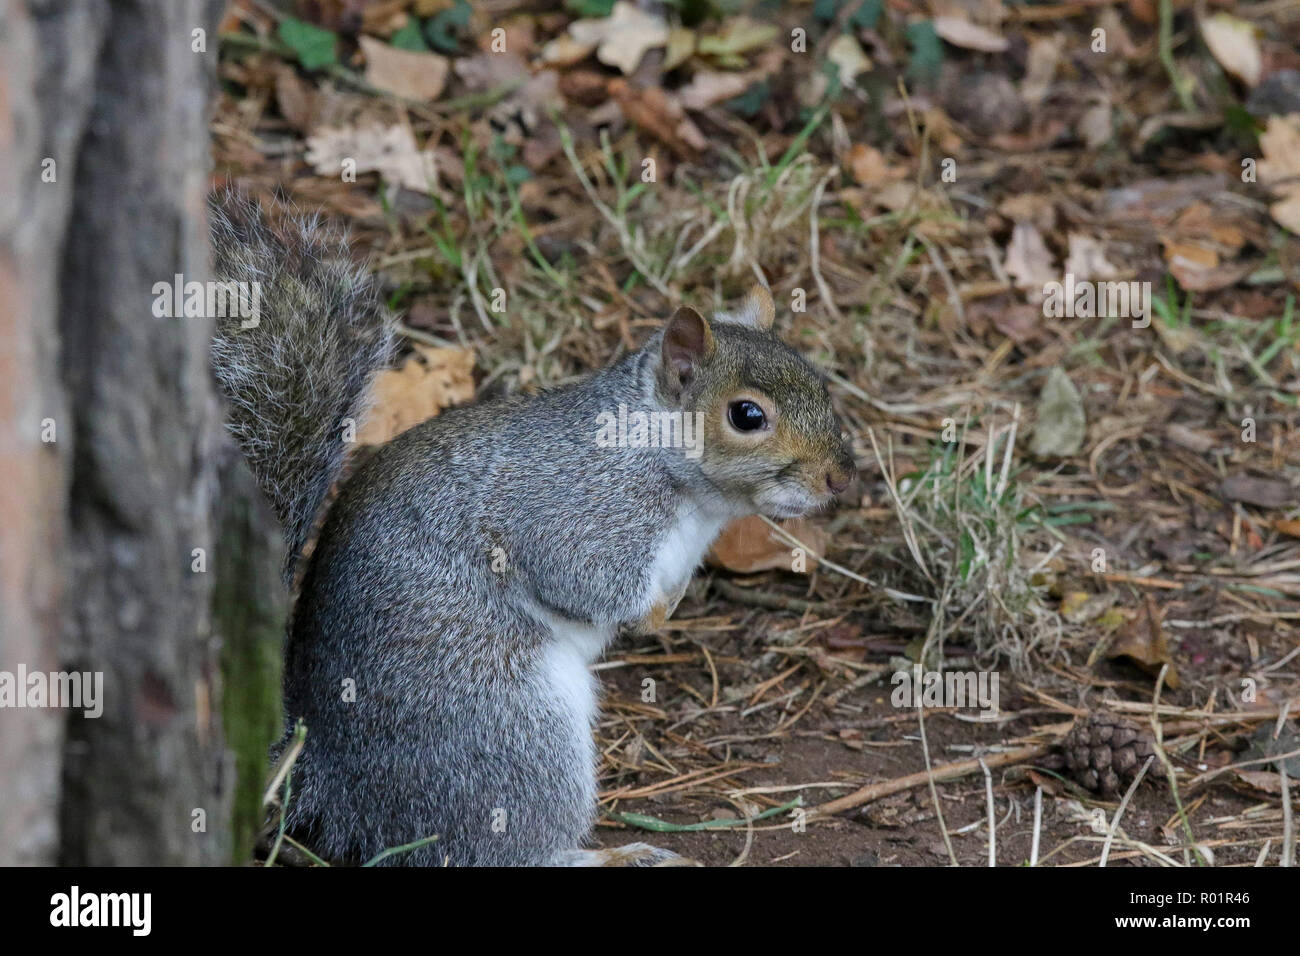 Lurgan Park, Lurgan, County Armagh, Northern Ireland. 31 October 2018. UK weather - a damp cold day in Lurgan Park with grey sky overhead until late afternoon. Grey day for a grey squirrel in the park. Credit: David Hunter/Alamy Live News. - Stock Image